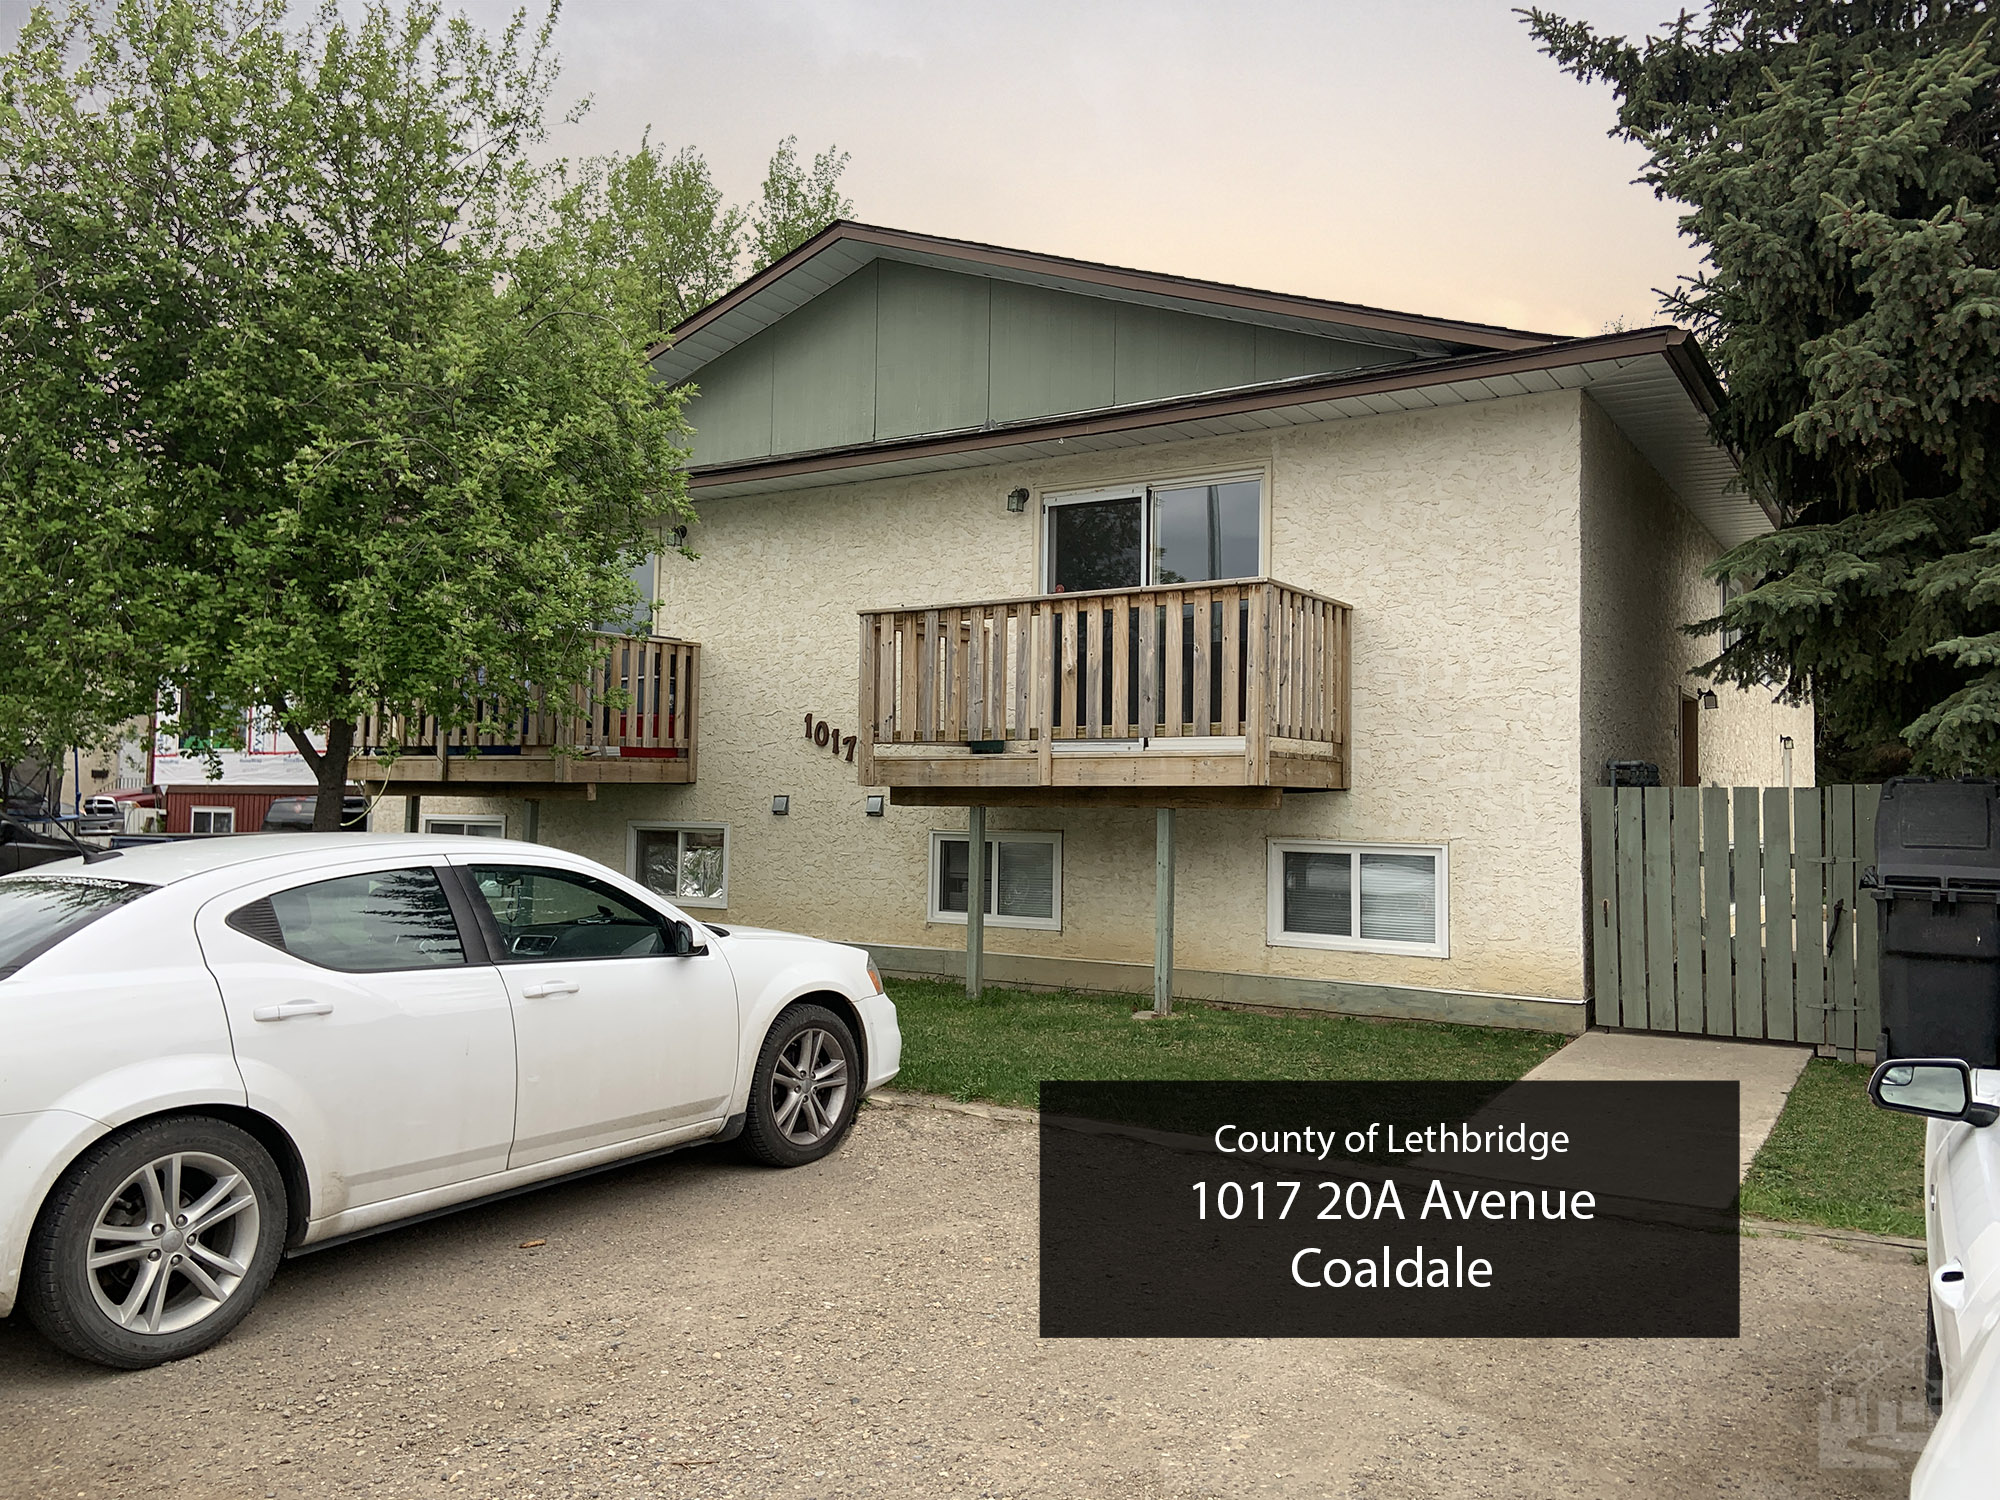 1017 20A Avenue Coaldale (Unit 1) Key Image